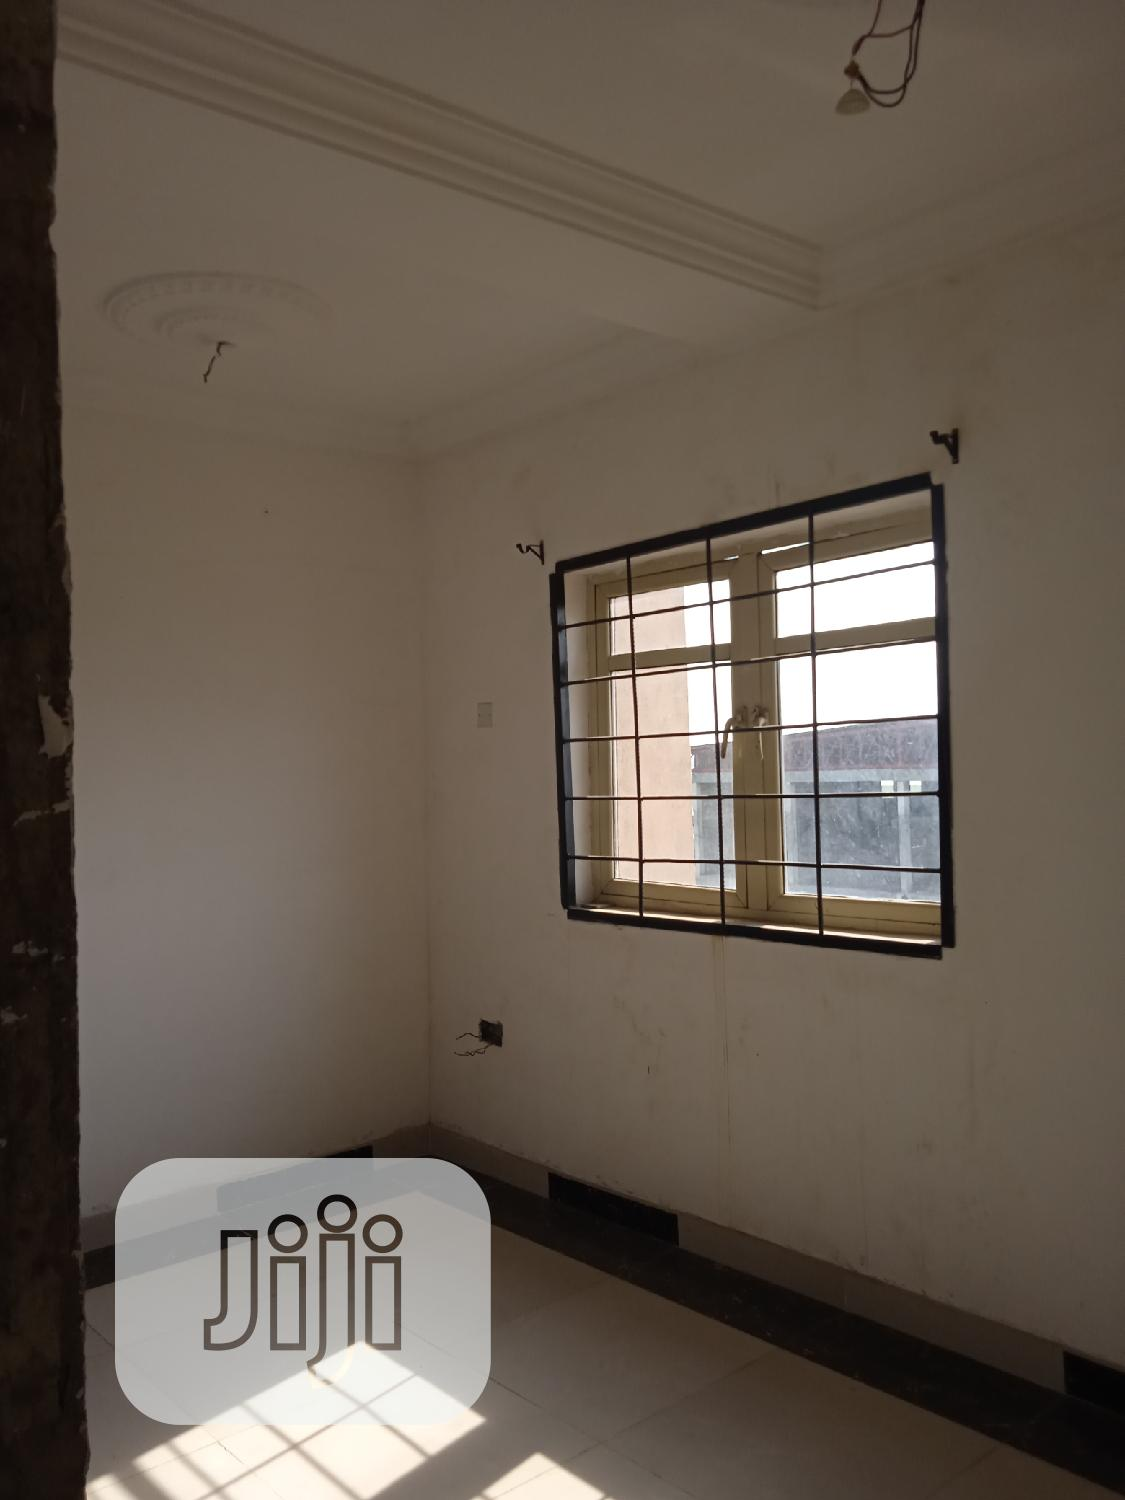 Archive: A Standard Office/Shop Space Up for Lease/Let